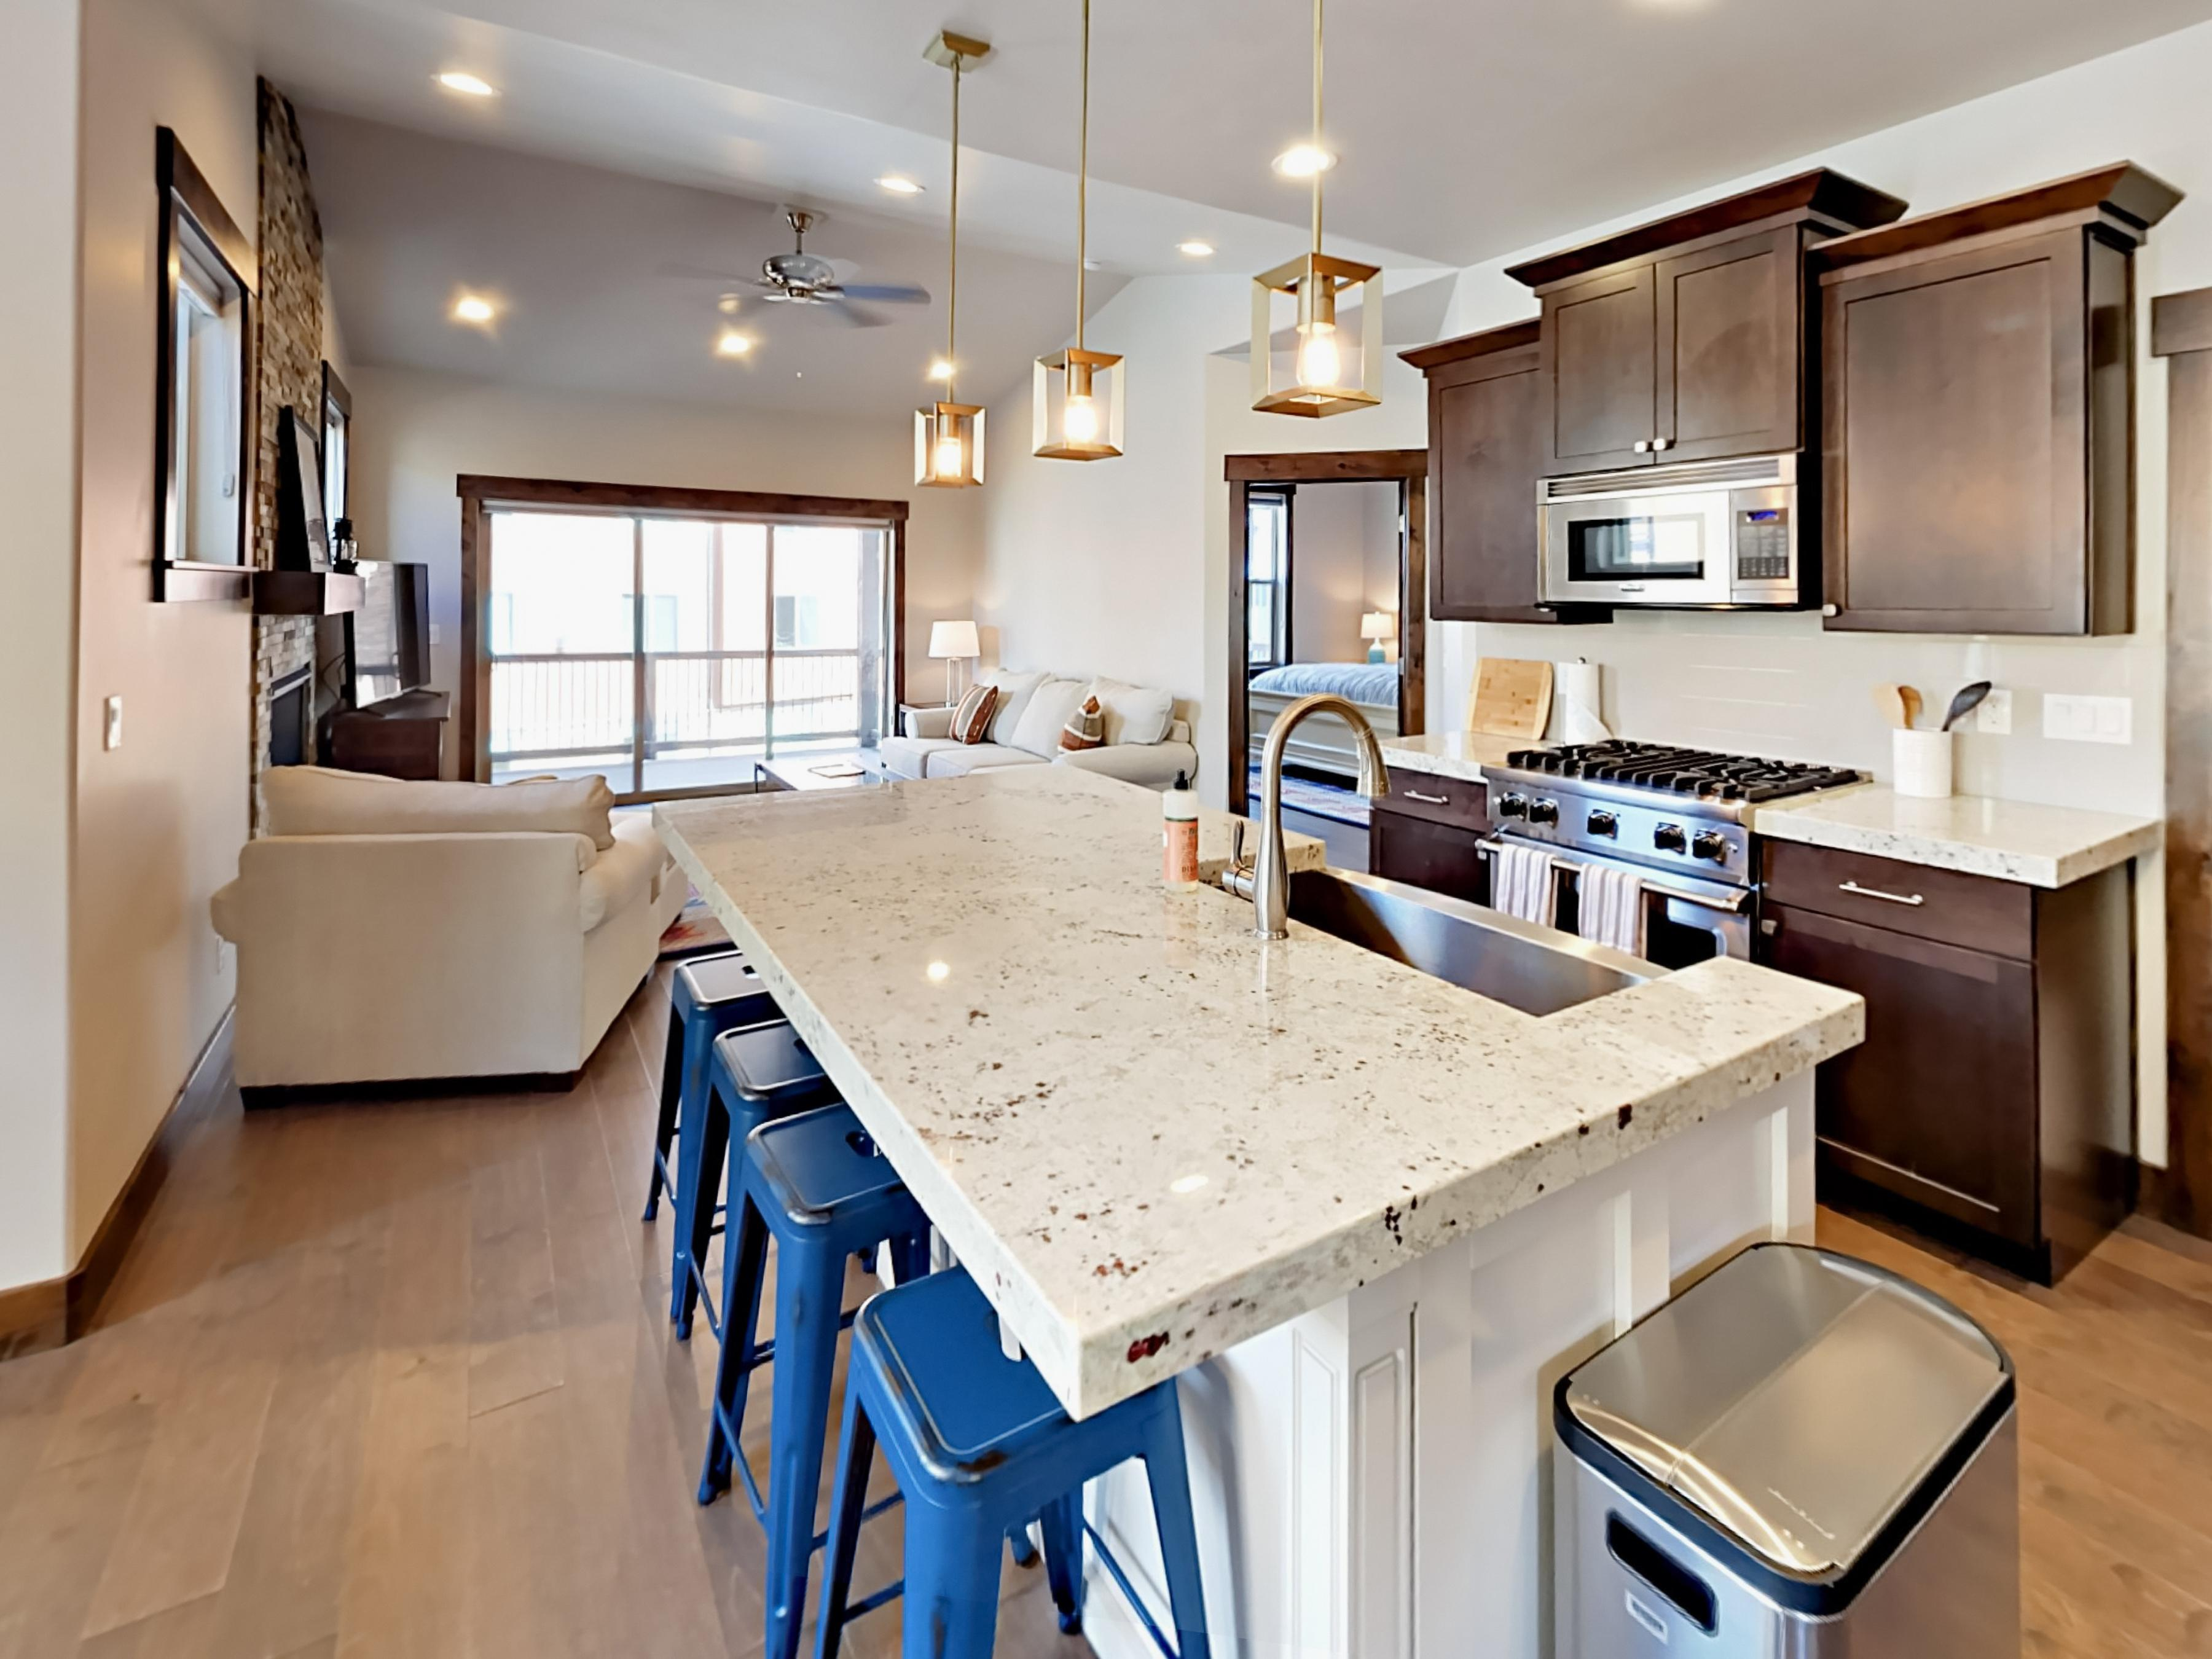 Enjoy preparing your meals around this high-end kitchen with stainless steel Viking appliances. A starter supply of dish soap and paper towels is provided.